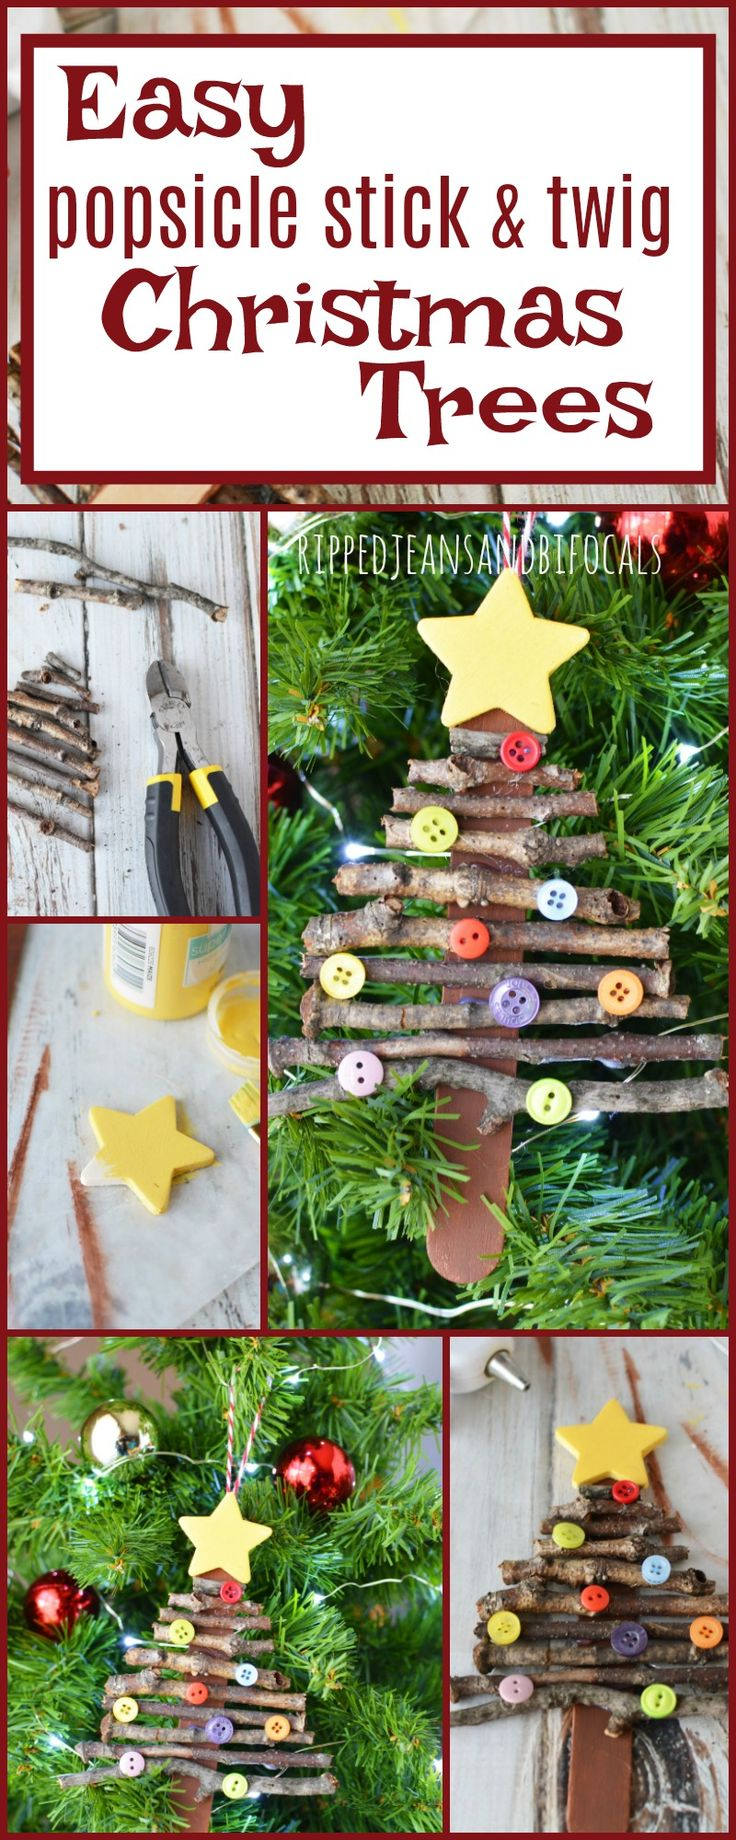 Super easy holiday craft for kids! Popsicle stick Christmas tree ornament Ripped Jeans and Bifocals  Easy Christmas crafts Christmas crafts for kids girl scout troop activities girl scout troop Christmas crafts School Christmas craft Homemade Christmas ornaments Handmade Christmas ornaments Easy Christmas ornaments DIY 